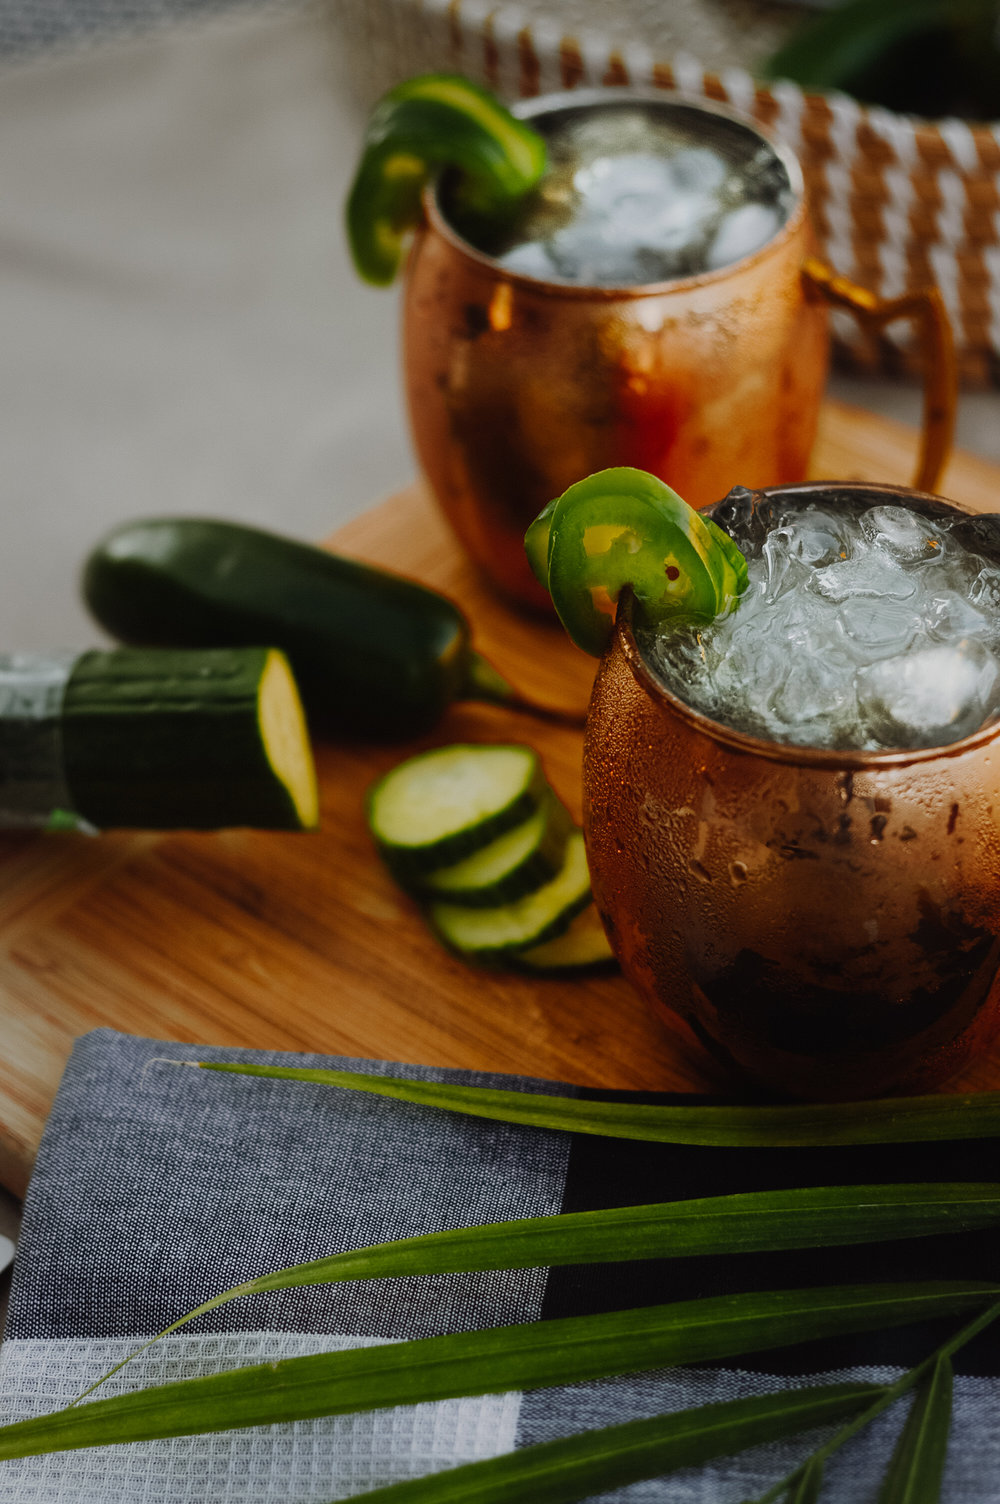 How To: Jalapeño-Cucumber Mule - - 1.5 oz Smirnoff No. 21 Vodka infused with cucumbers and jalapeños - 3 oz Ginger Beer- 0.75 oz Fresh Lime Juice (half squeeze)- 1 jalapeño slice- 1 cucumber sliceTo kick things off, start by influsing Smirnoff* No. 21 Vodka with 10-20 sliced cucumbers and 1 diced jalapeños (seeds removed), around 30-45 mins (longer if you prefer additional kick). Once the vodka has been successfully infused, add 1.5 oz. into a copper mule mug. This is the best cup for a Moscow Mule, since the metal quickly takes on the icy temperature of the cocktail! Next, add 3 oz. of quality ginger beer. Top things off with a squeeze of fresh lime, stir, and top with crushed ice. For fun, garnish with 1 jalapeño and 1 cucumber slice.